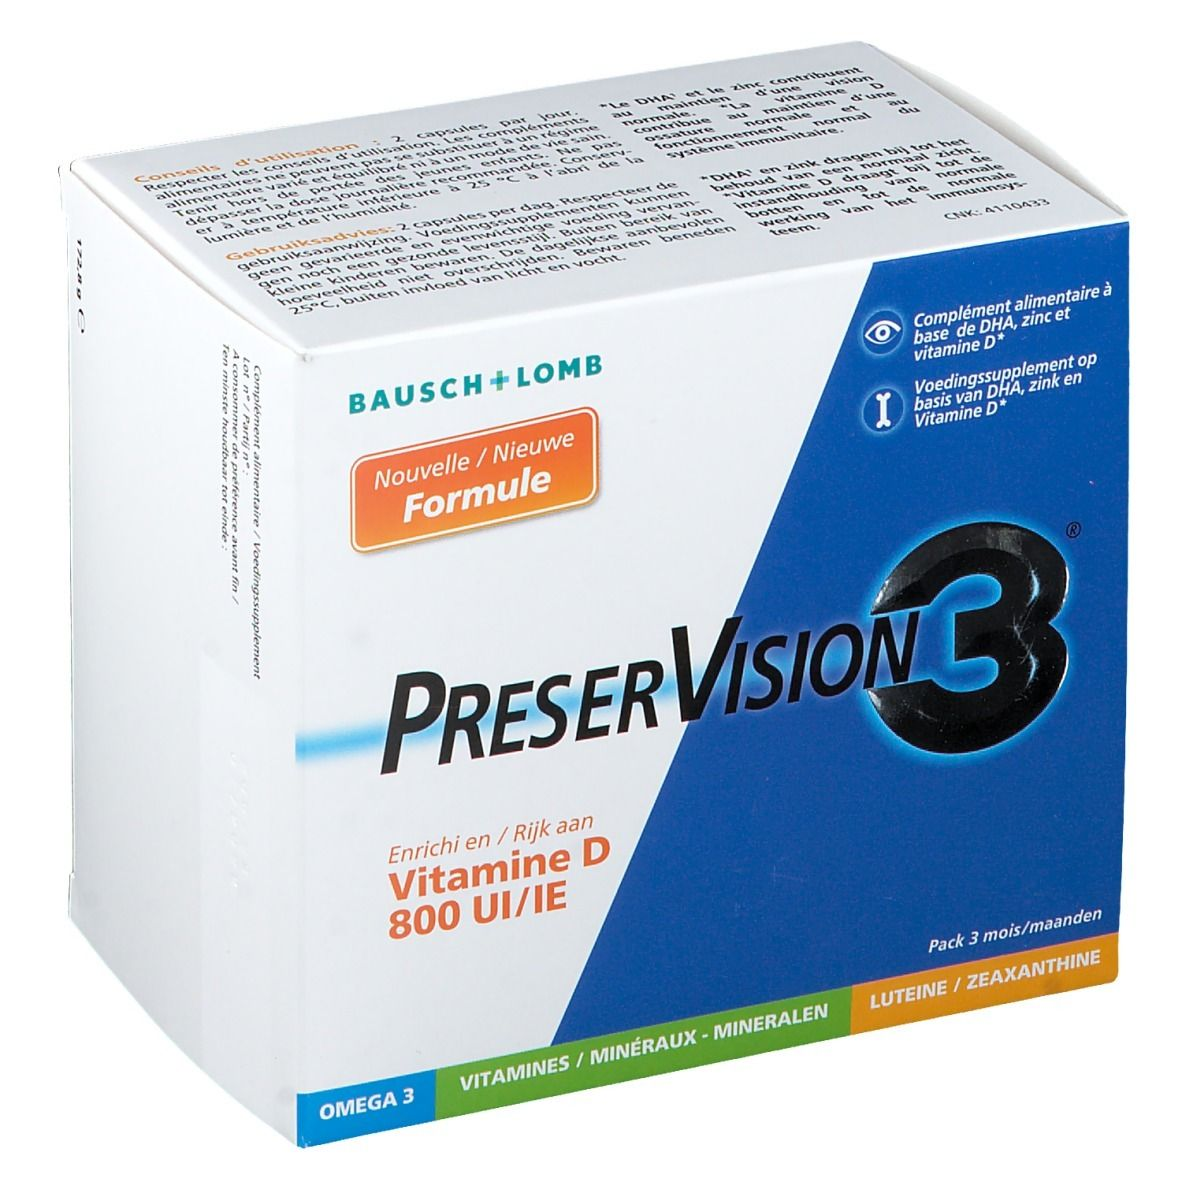 Image of Bausch & Lomb PreserVision 3 + Vitamin D3